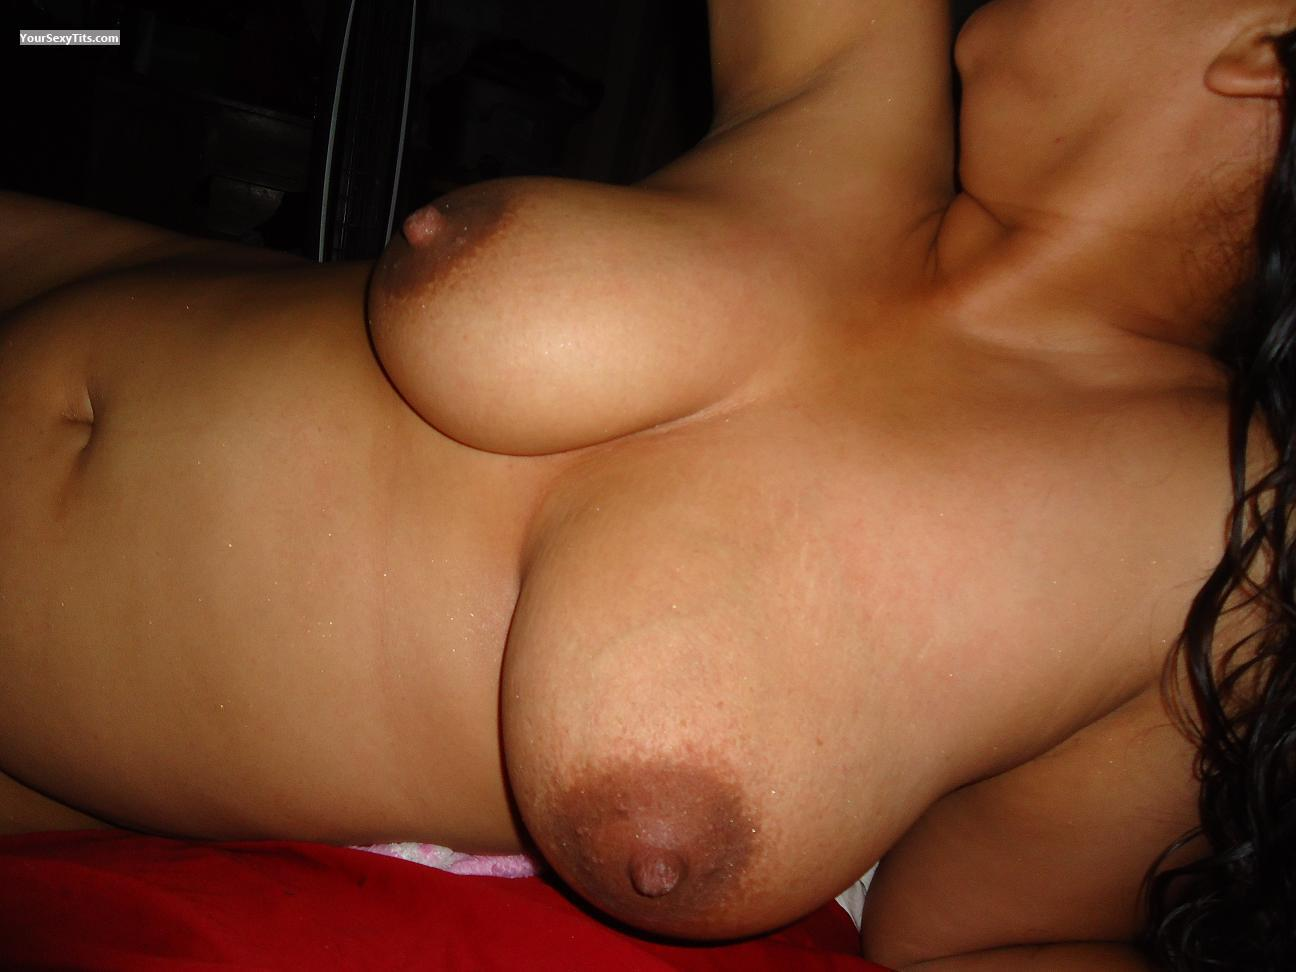 Tit Flash: Very Big Tits - Nara from United States